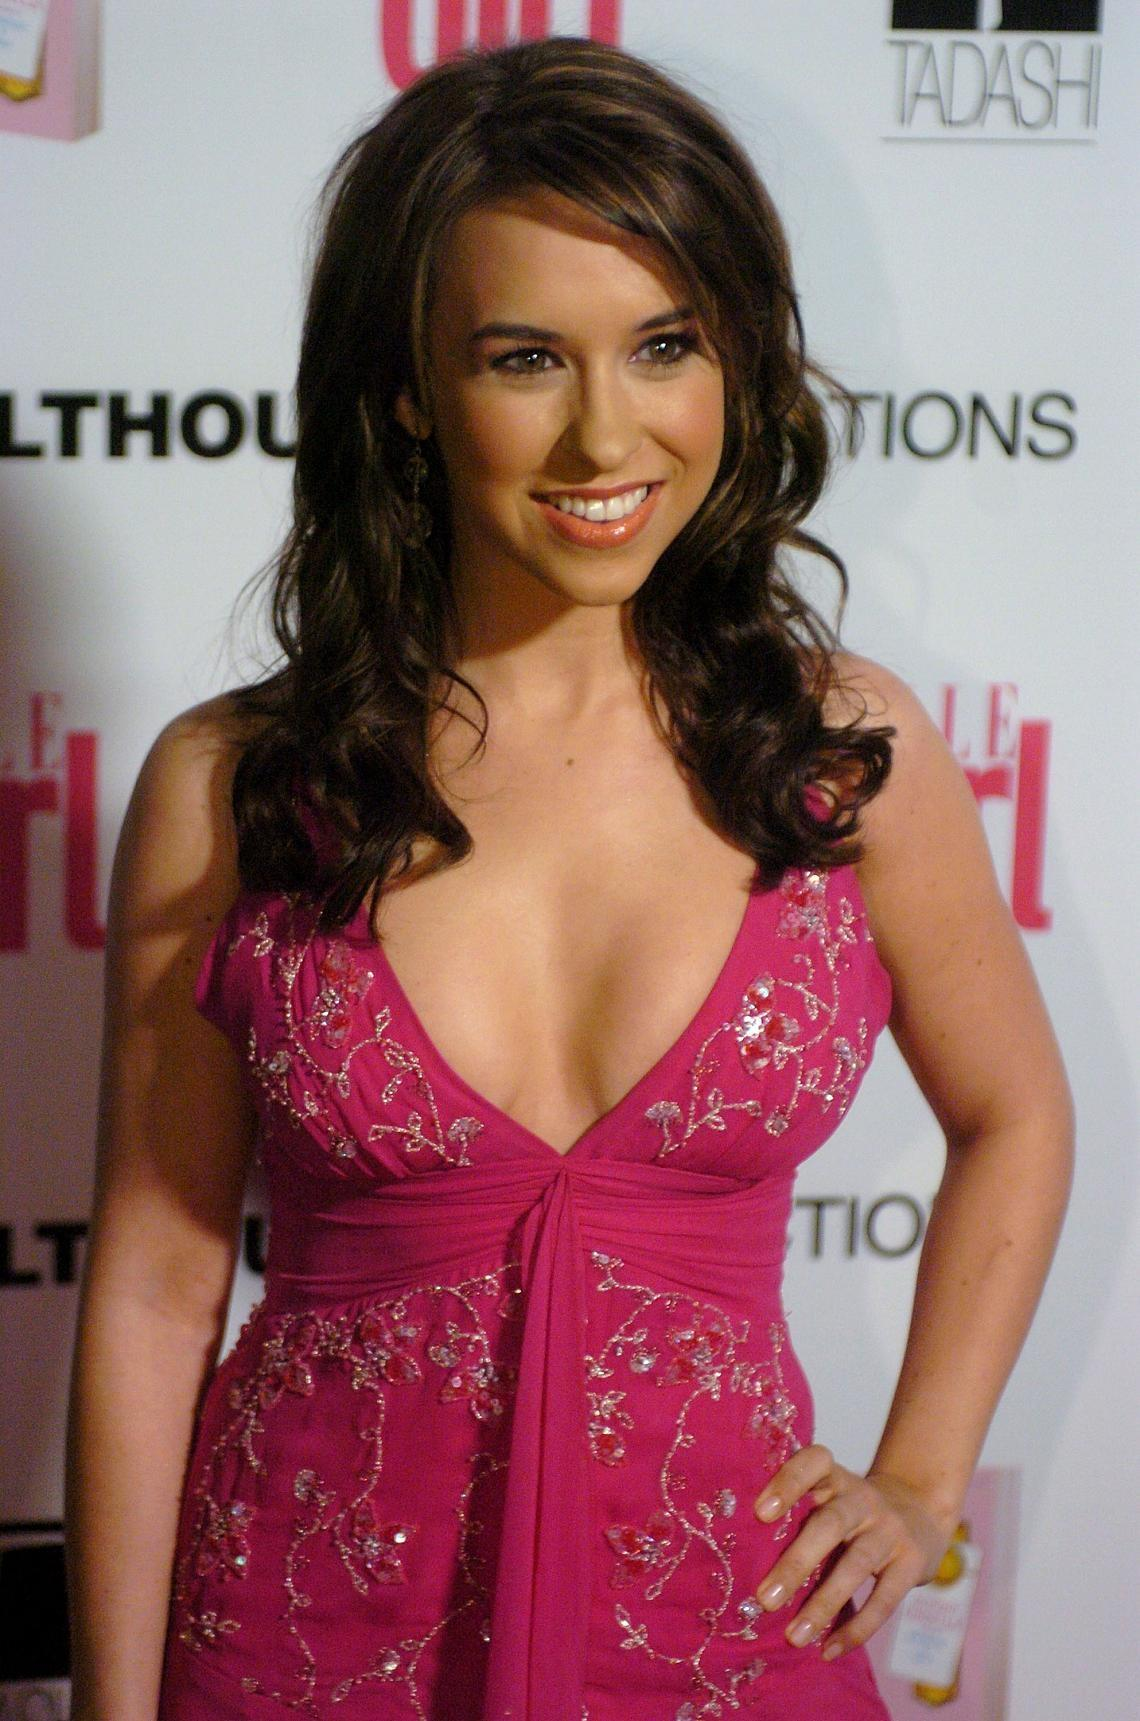 lacey chabert instagramlacey chabert instagram, lacey chabert lost in space, lacey chabert imdb, lacey chabert 1998, lacey chabert wikipedia, lacey chabert family guy, lacey chabert meg griffin, lacey chabert brennan elliott, lacey chabert 2016, lacey chabert filmography, lacey chabert a royal christmas, lacey chabert photoshoot, lacey chabert, lacey chabert husband, lacey chabert hallmark movies, lacey chabert bikini, lacey chabert wiki, lacey chabert 2015, party of five lacey chabert, lacey chabert movie list